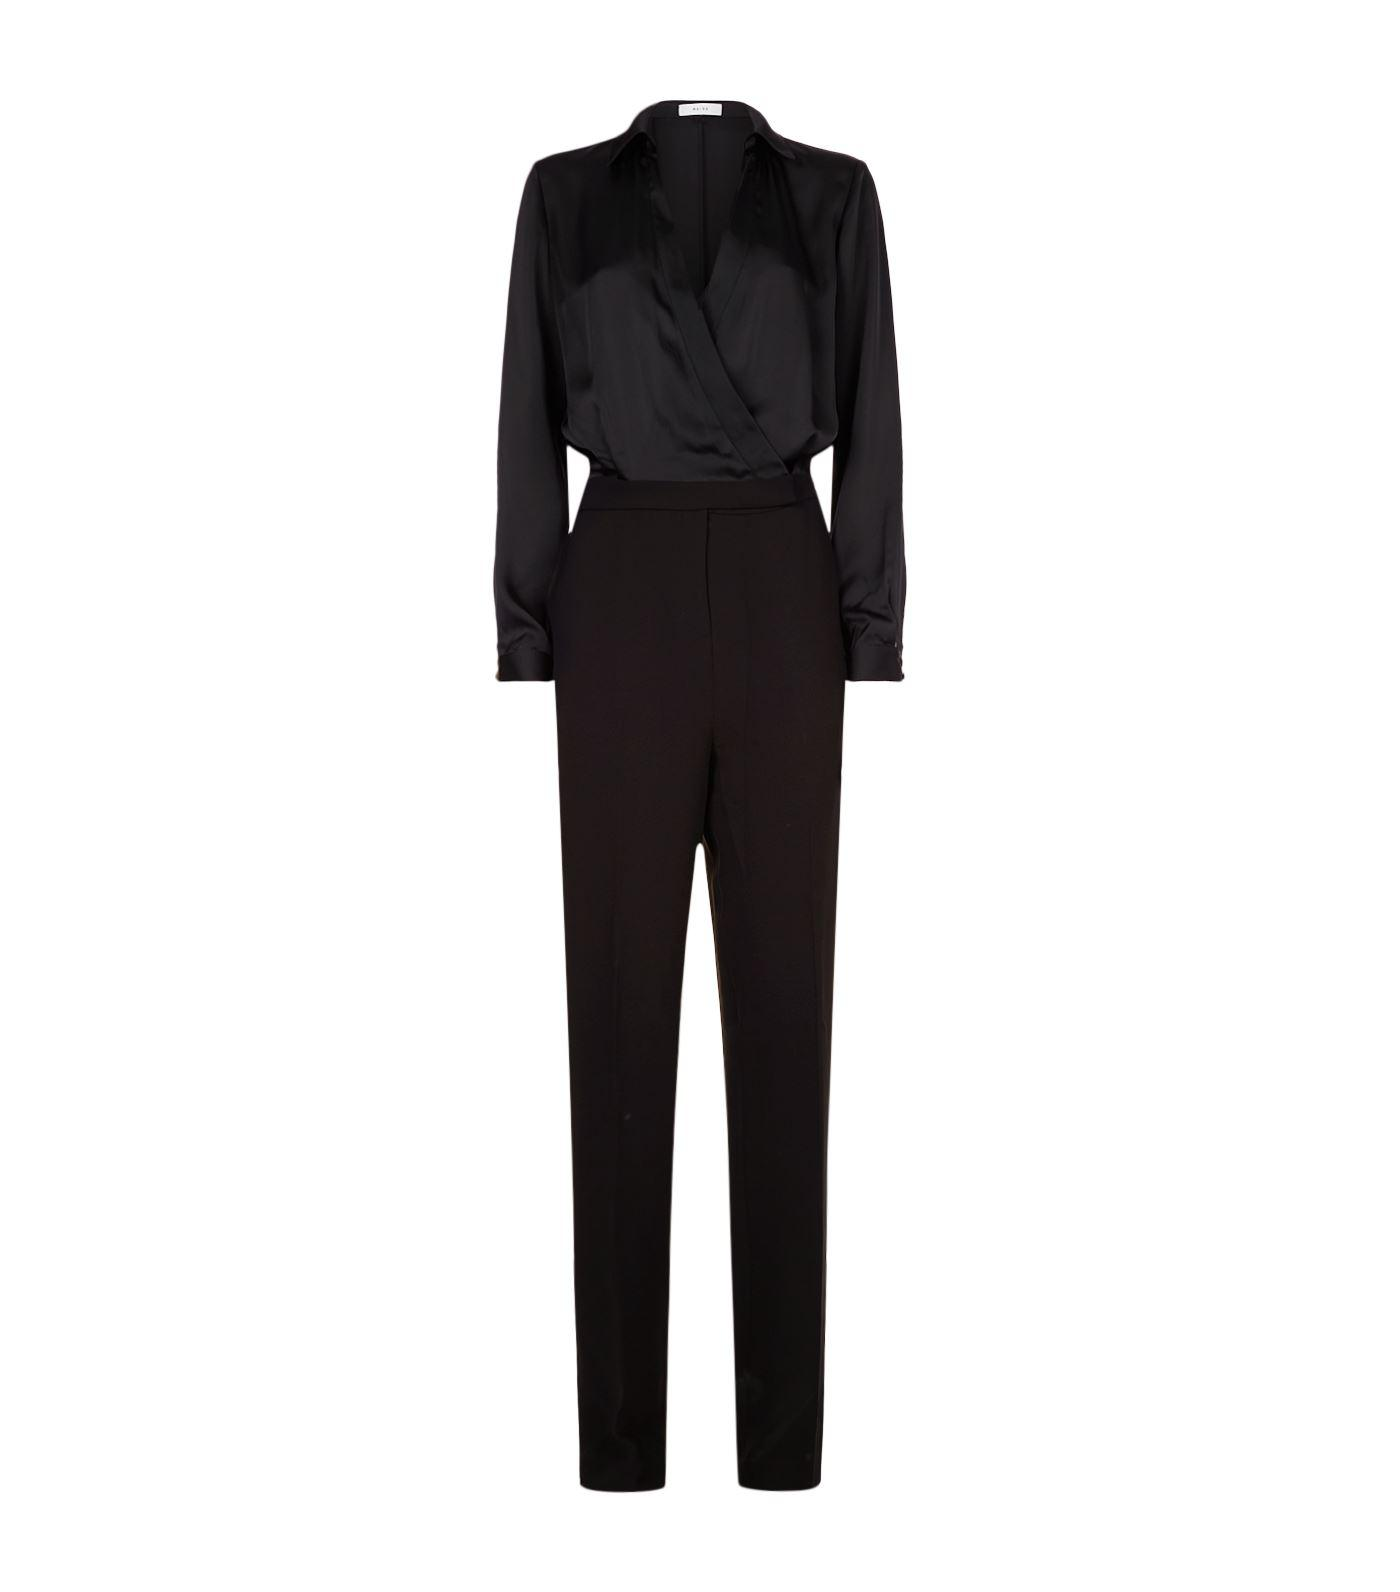 147f0567ff2 Reiss Imie Wrap-front Jumpsuit in Black - Lyst